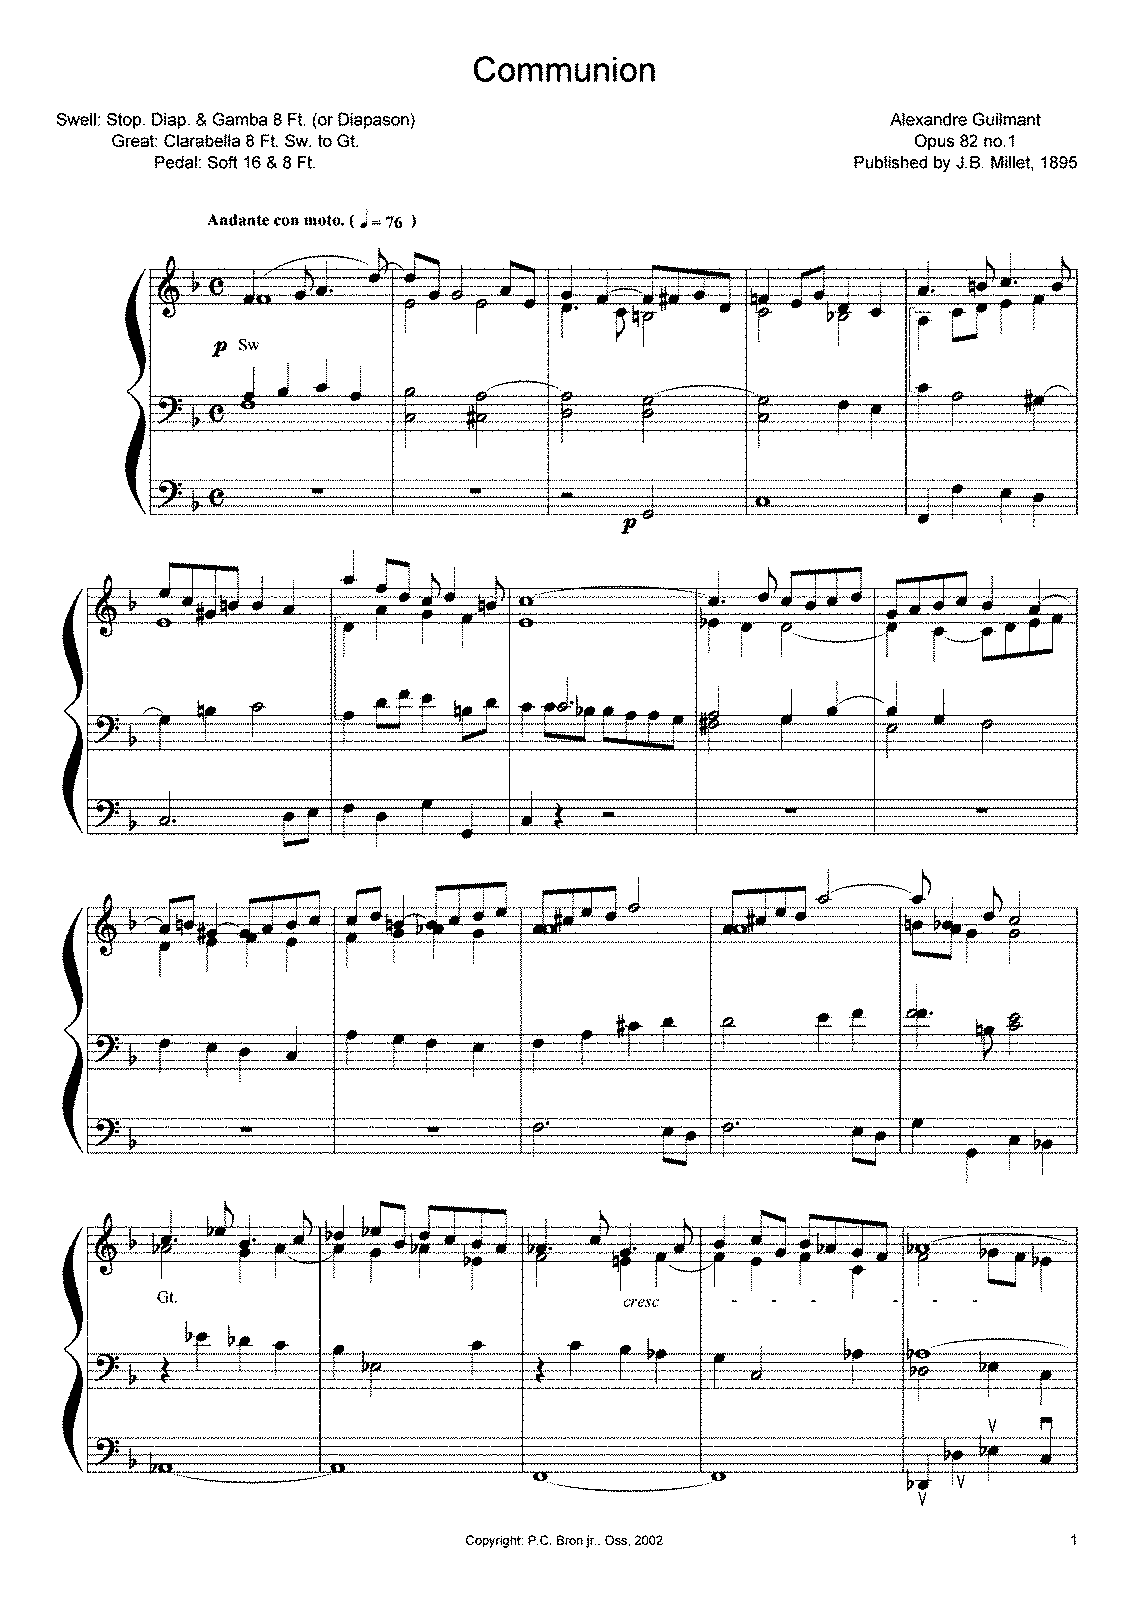 PMLP191230-Guilmant Opus 82-1, Communion.pdf